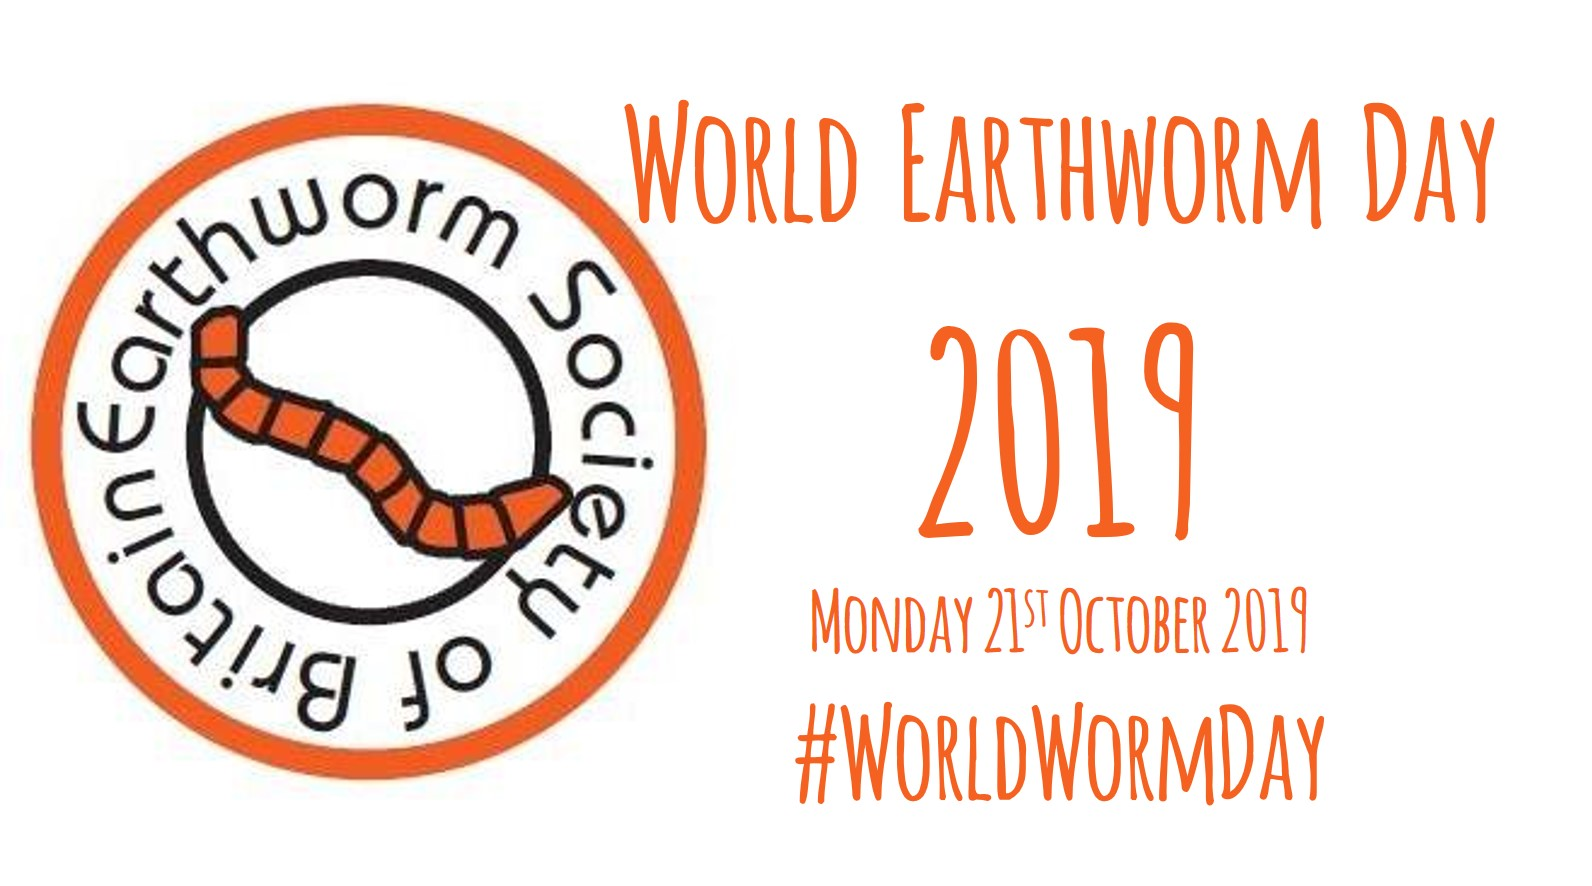 World Earthworm Day 2019 banner image